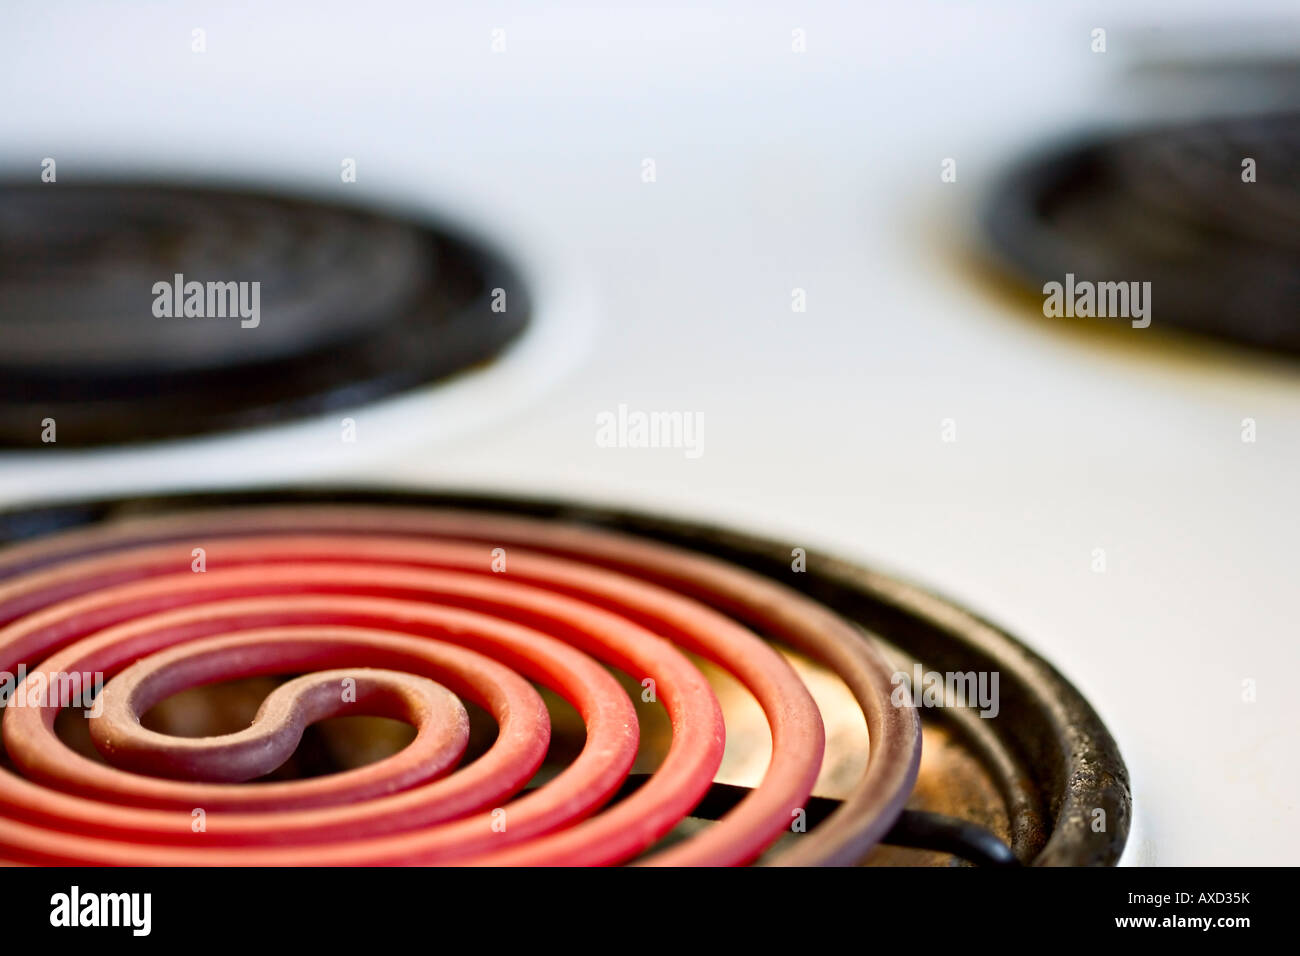 Old fashioned electric cooker hob glows red hot Stock Photo